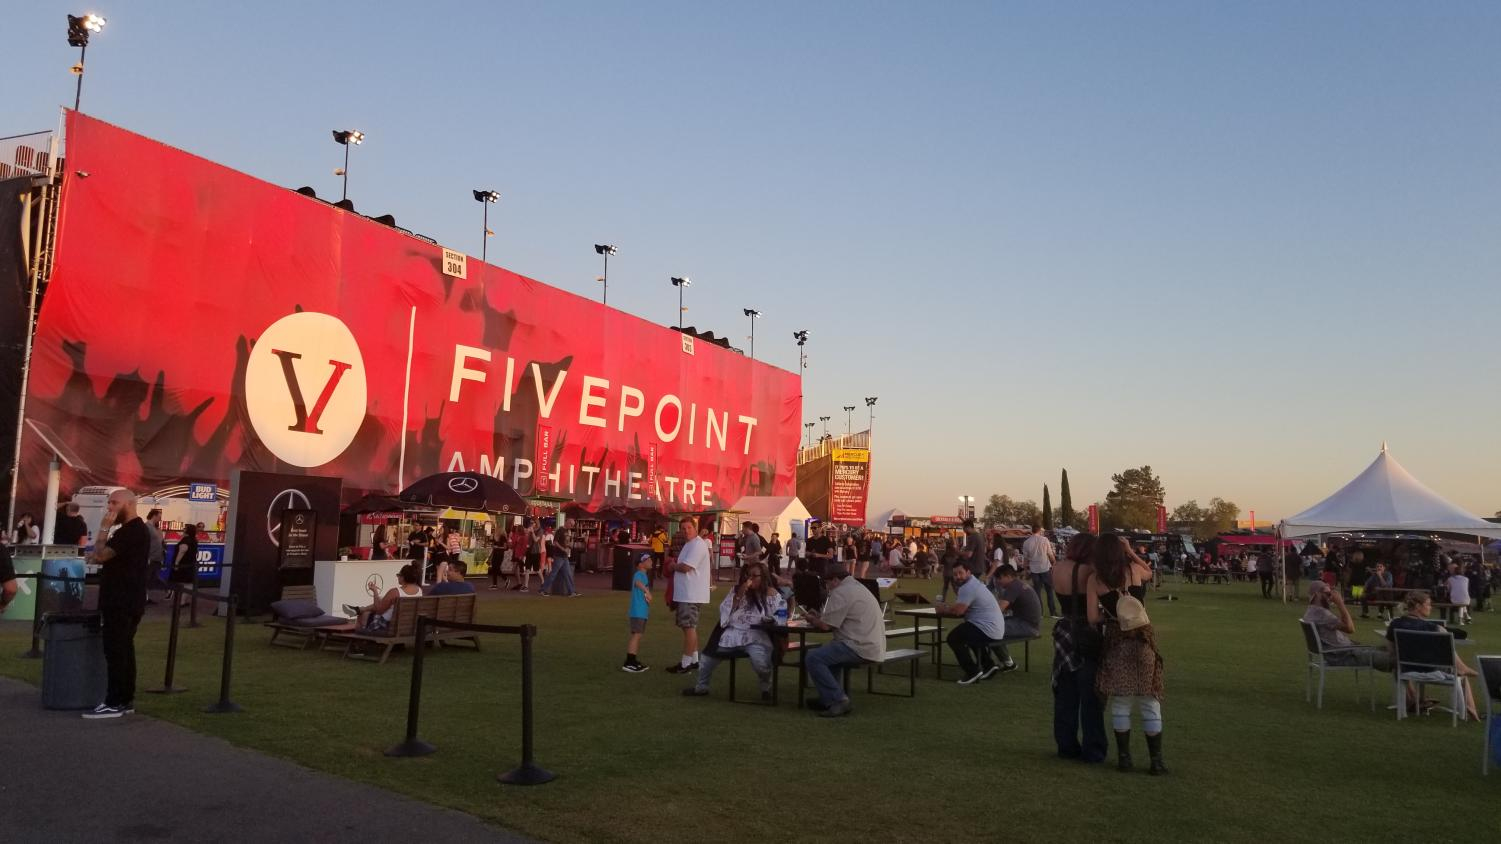 FivePoint Amphitheater featuring some of the best rock bands The show took place Aug. 29 2019.